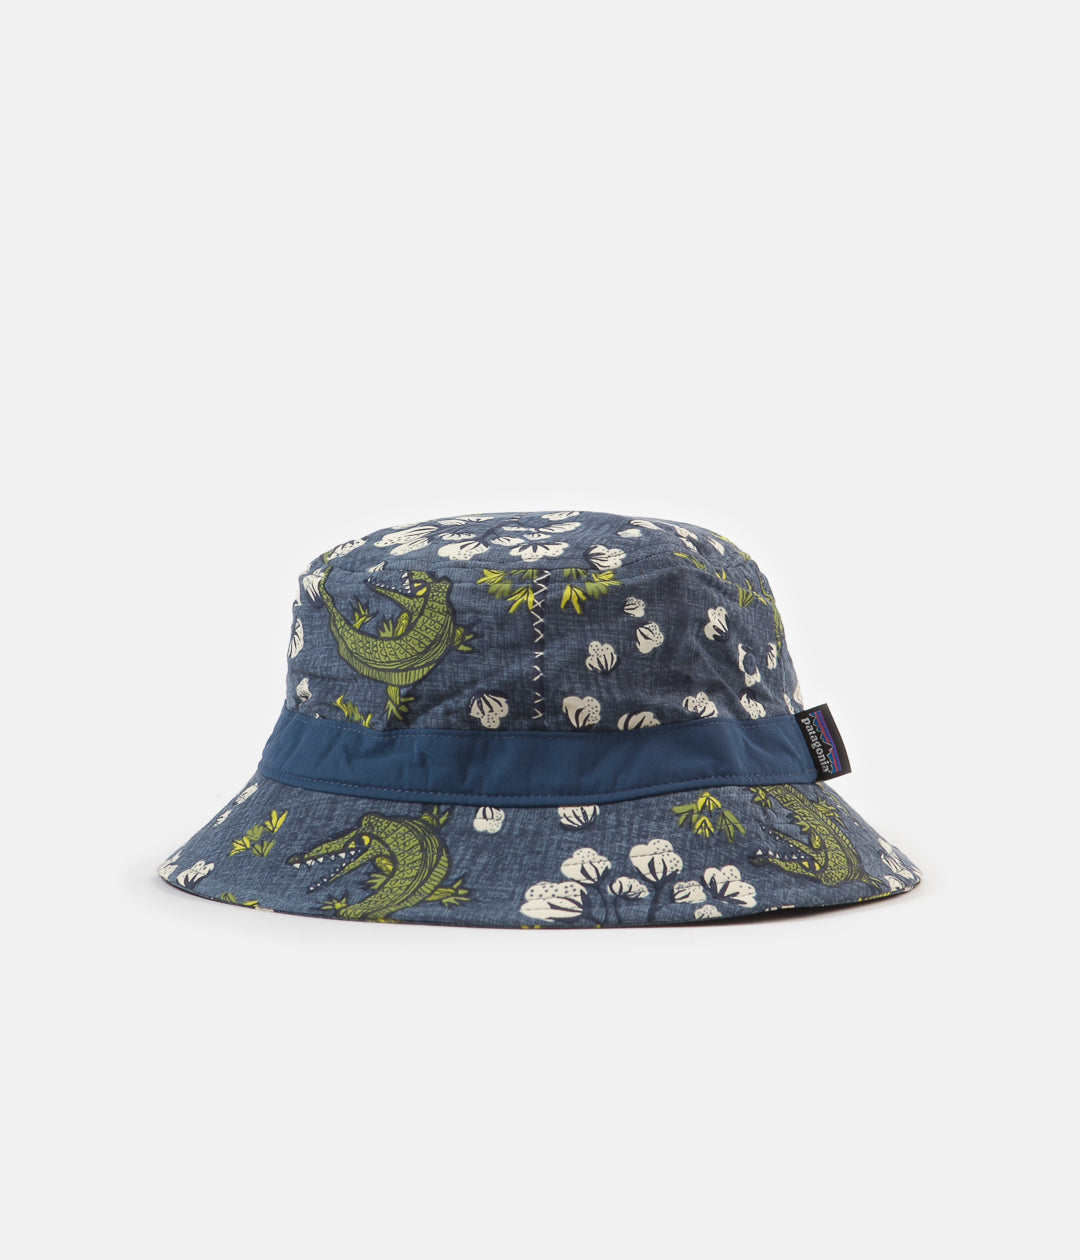 Patagonia Wavefarer Bucket Hat - Cotton Ball Gators: Dolomite Blue